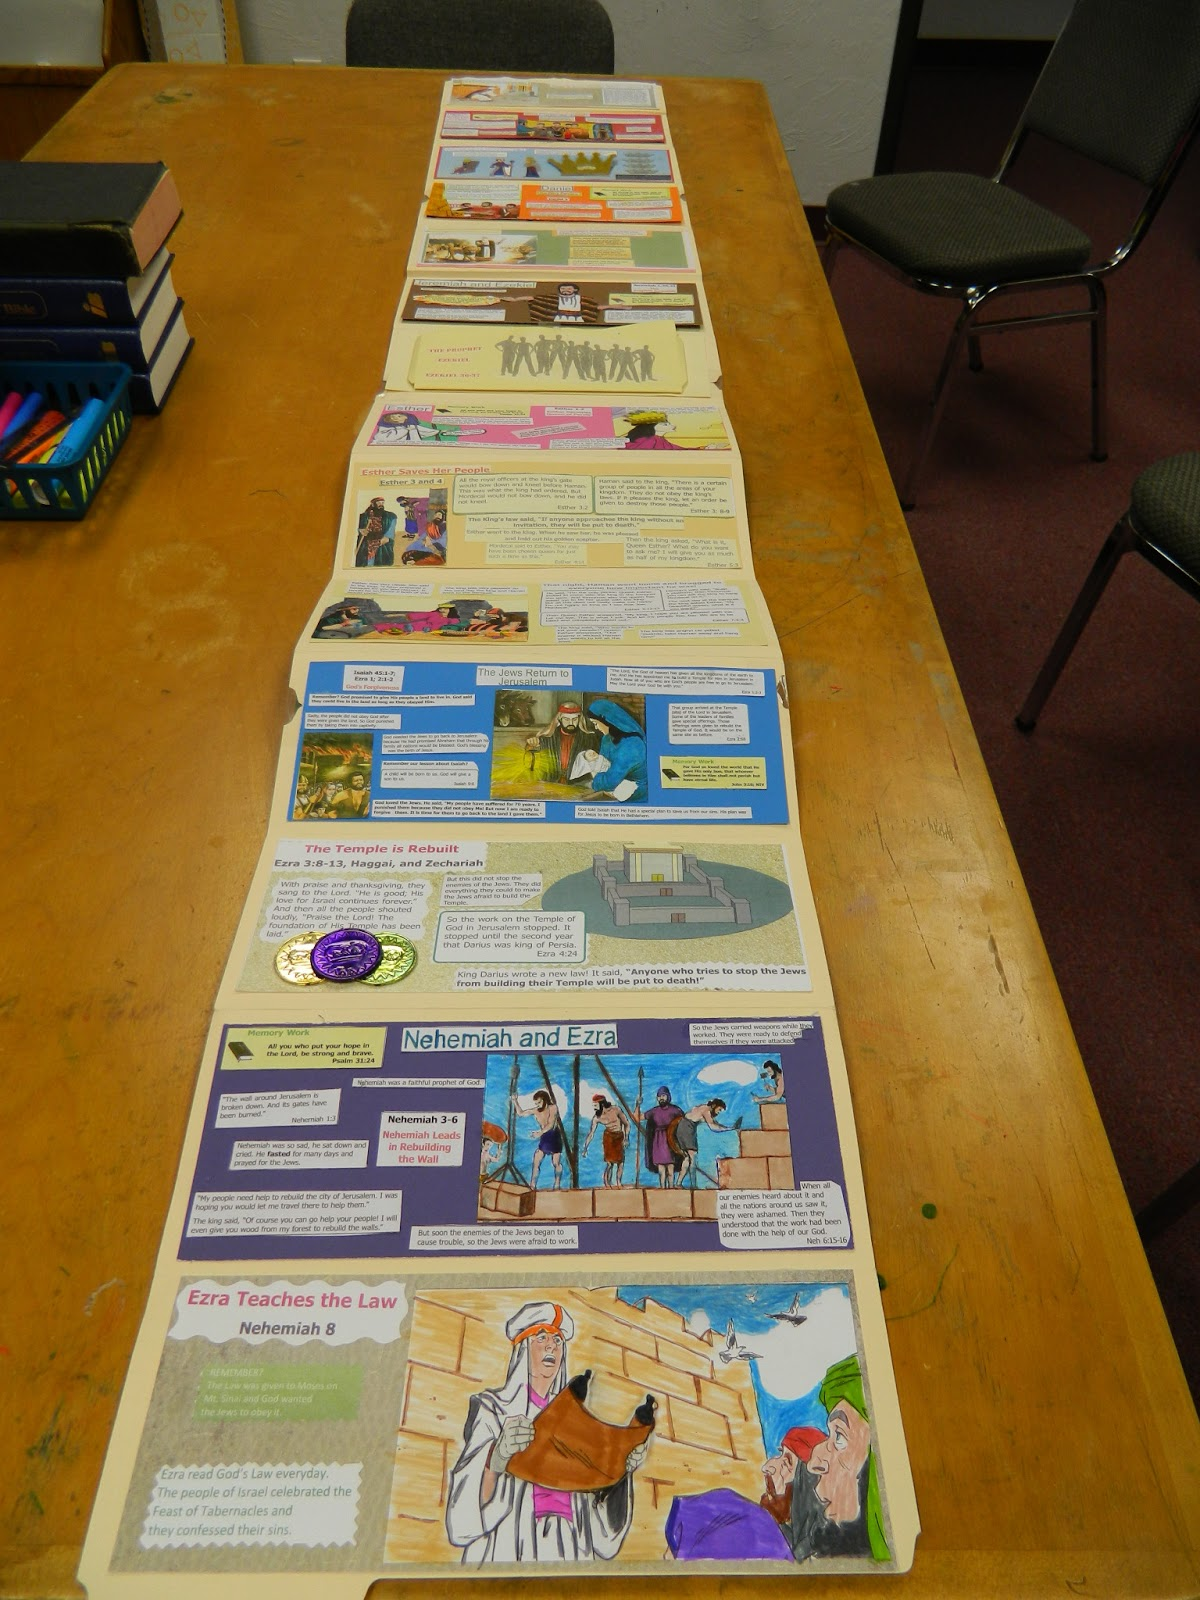 Hands On Bible Teacher Lap Book Activity From The 2nd 4th Grade Class